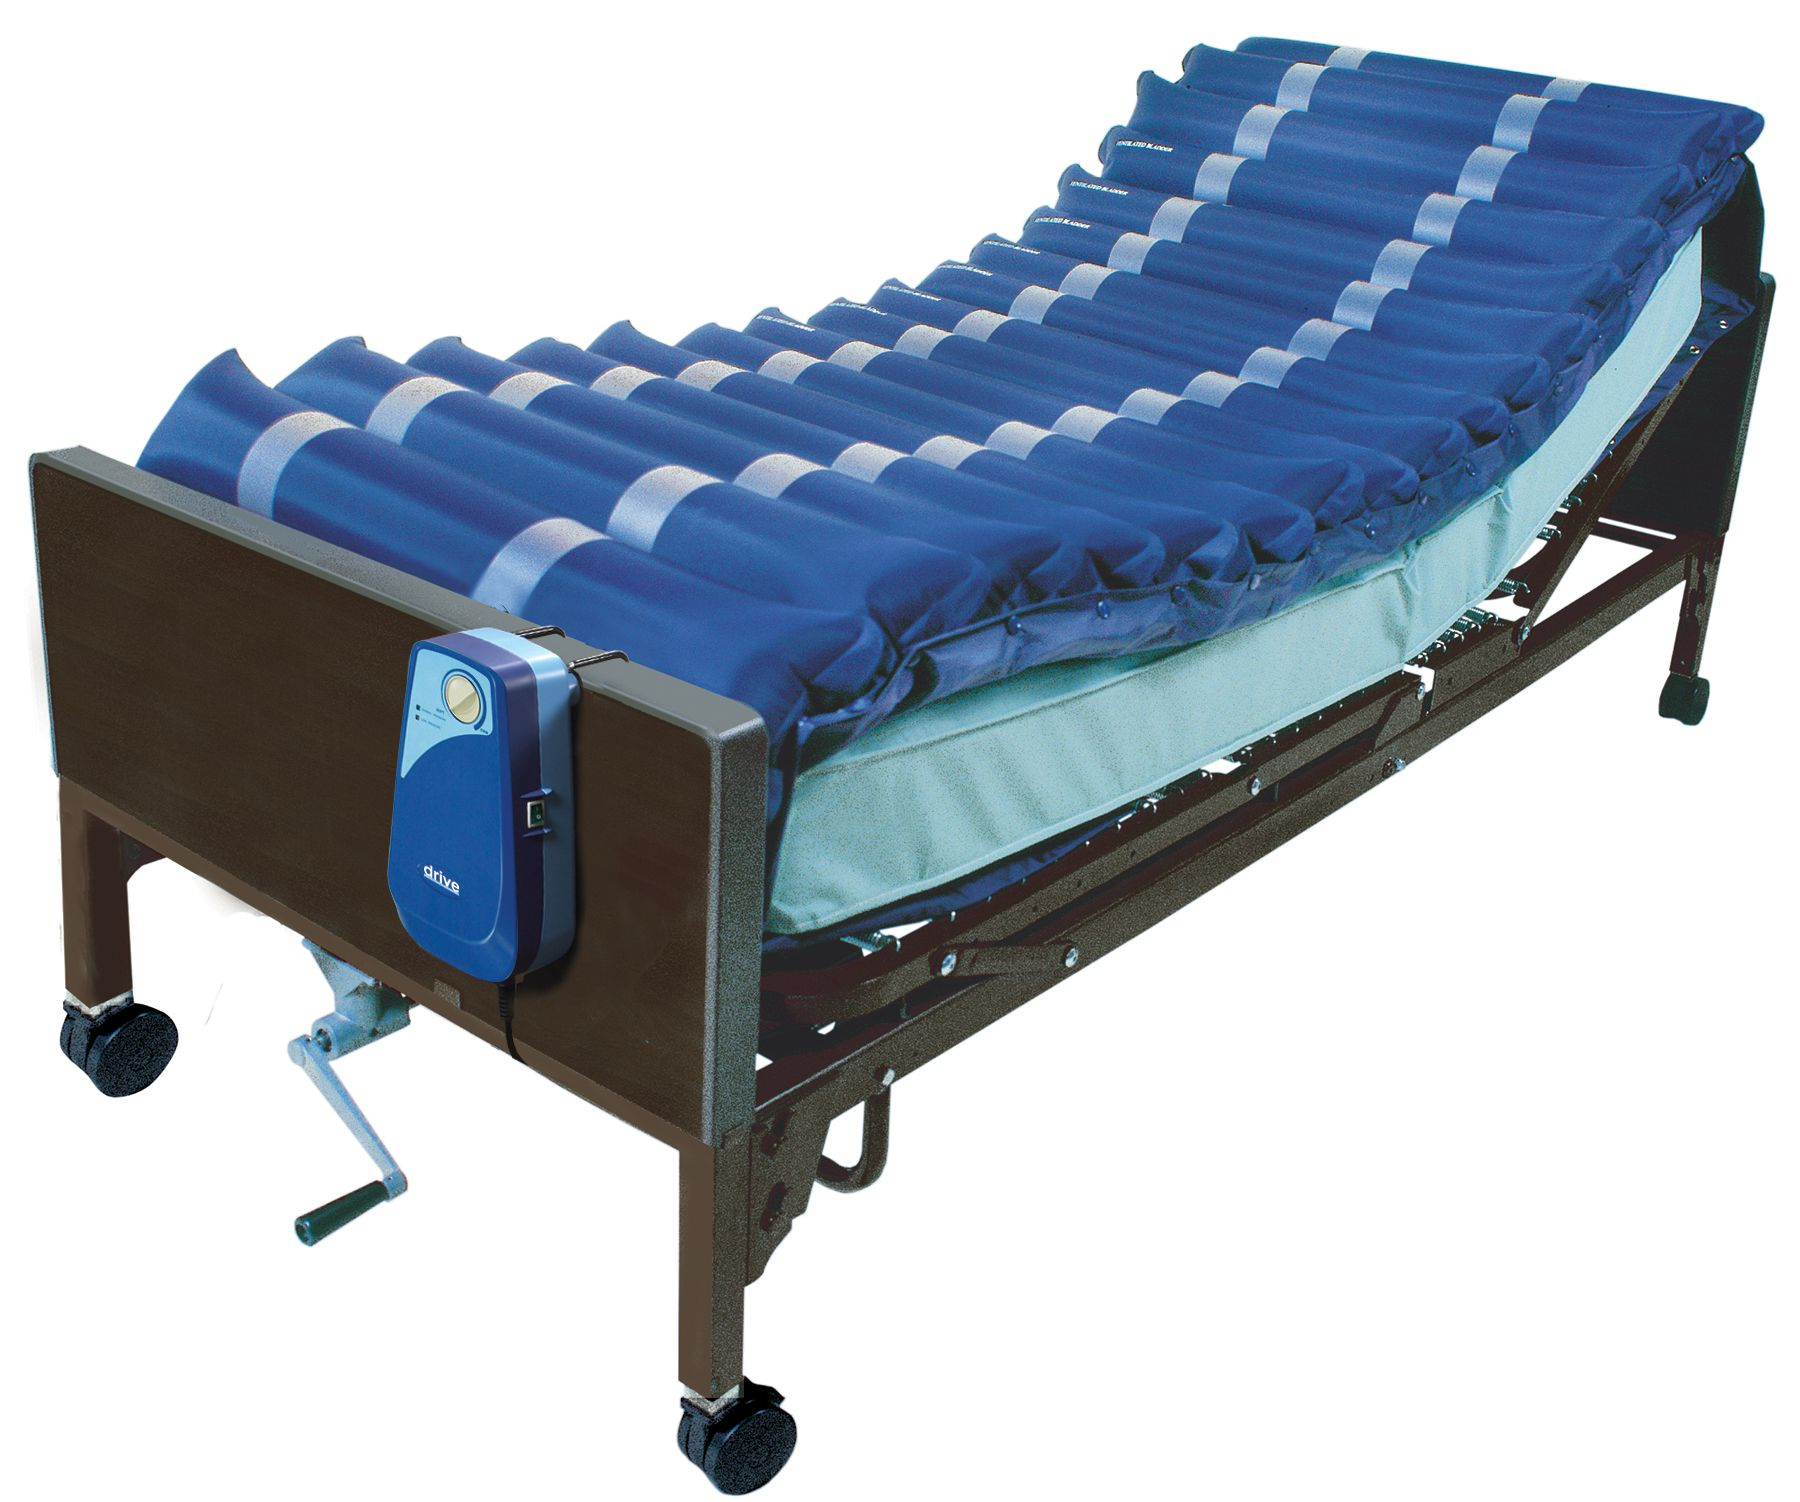 Mattress Overlay For Massage 1 On Sale Near Me Ideas Air Mattress Hospital Bed Bed